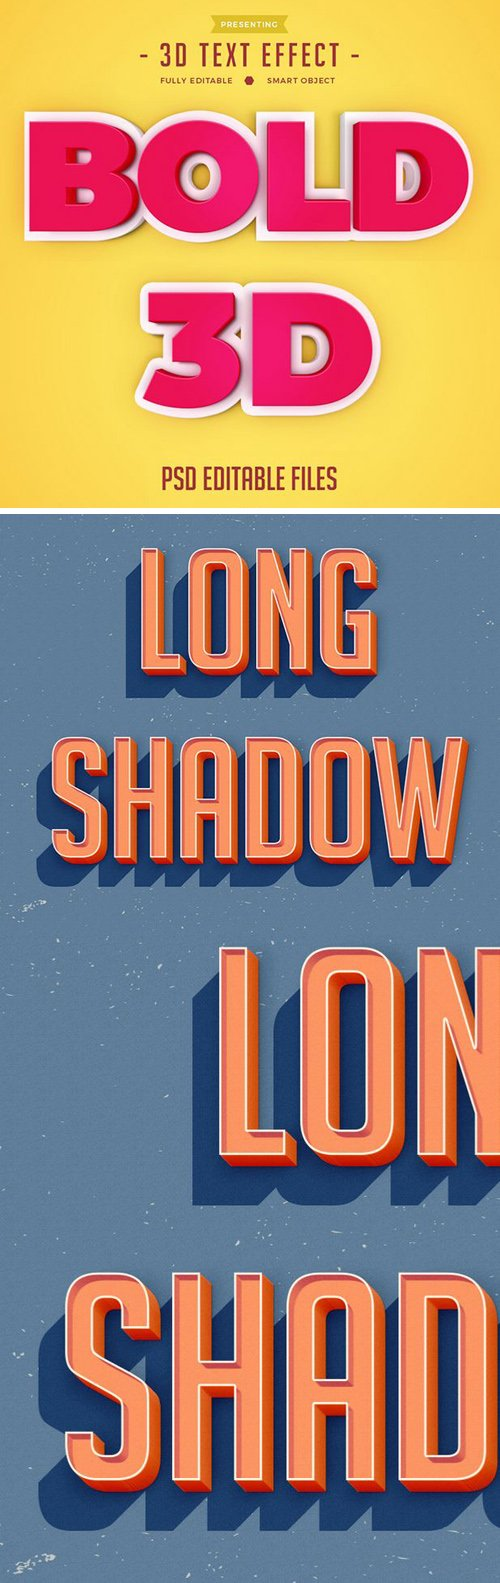 3D Bold & Long Shadow Text Effects for Photoshop